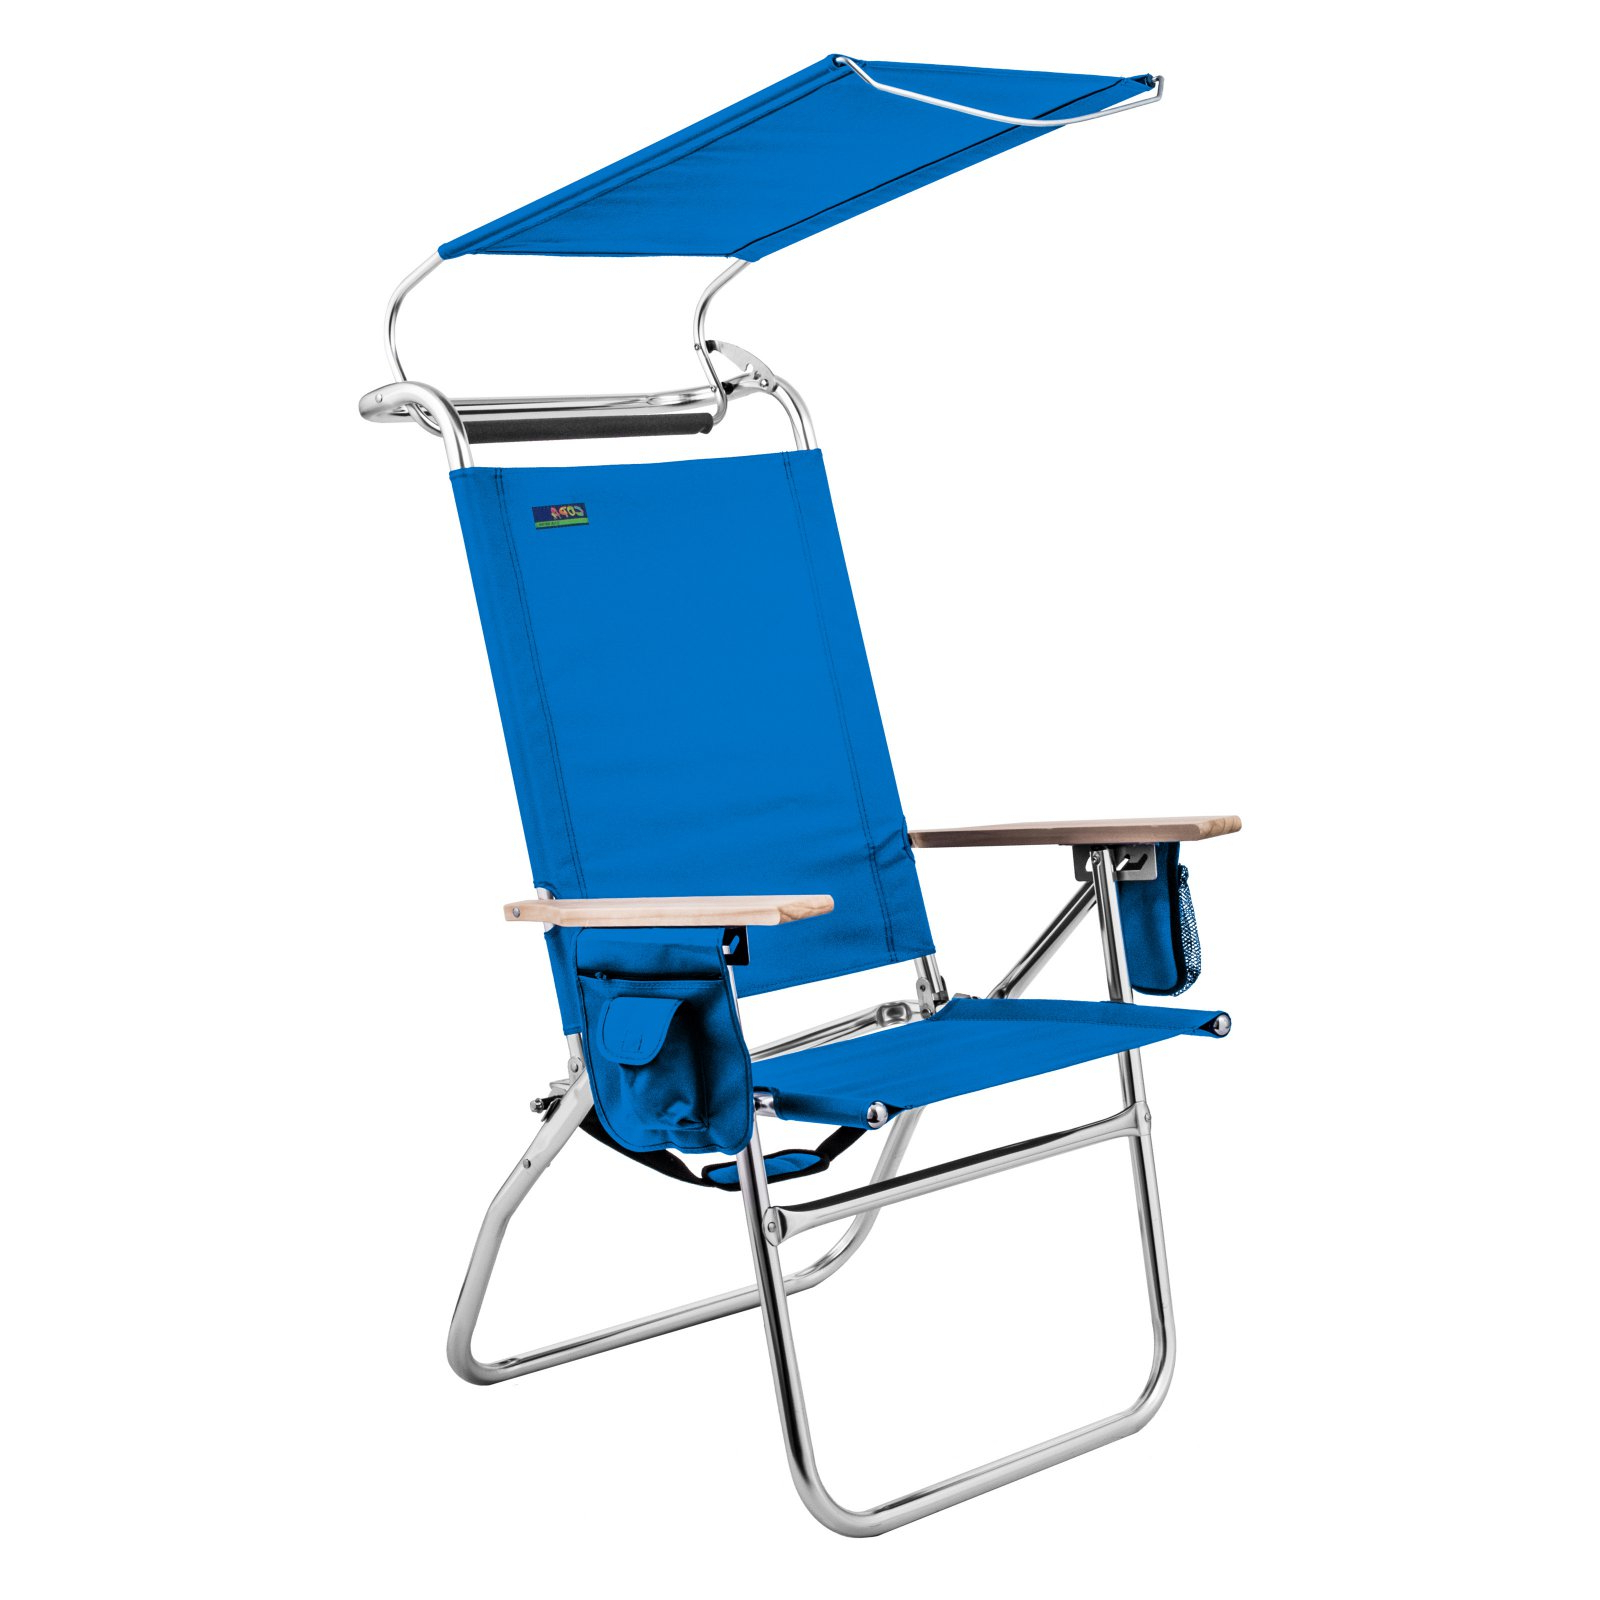 Outdoor Copa 4 Position Big Tycoon Canopy Beach Chair Blue Regarding 2019 Folding Patio Lounge Beach Chairs With Canopy (View 20 of 25)